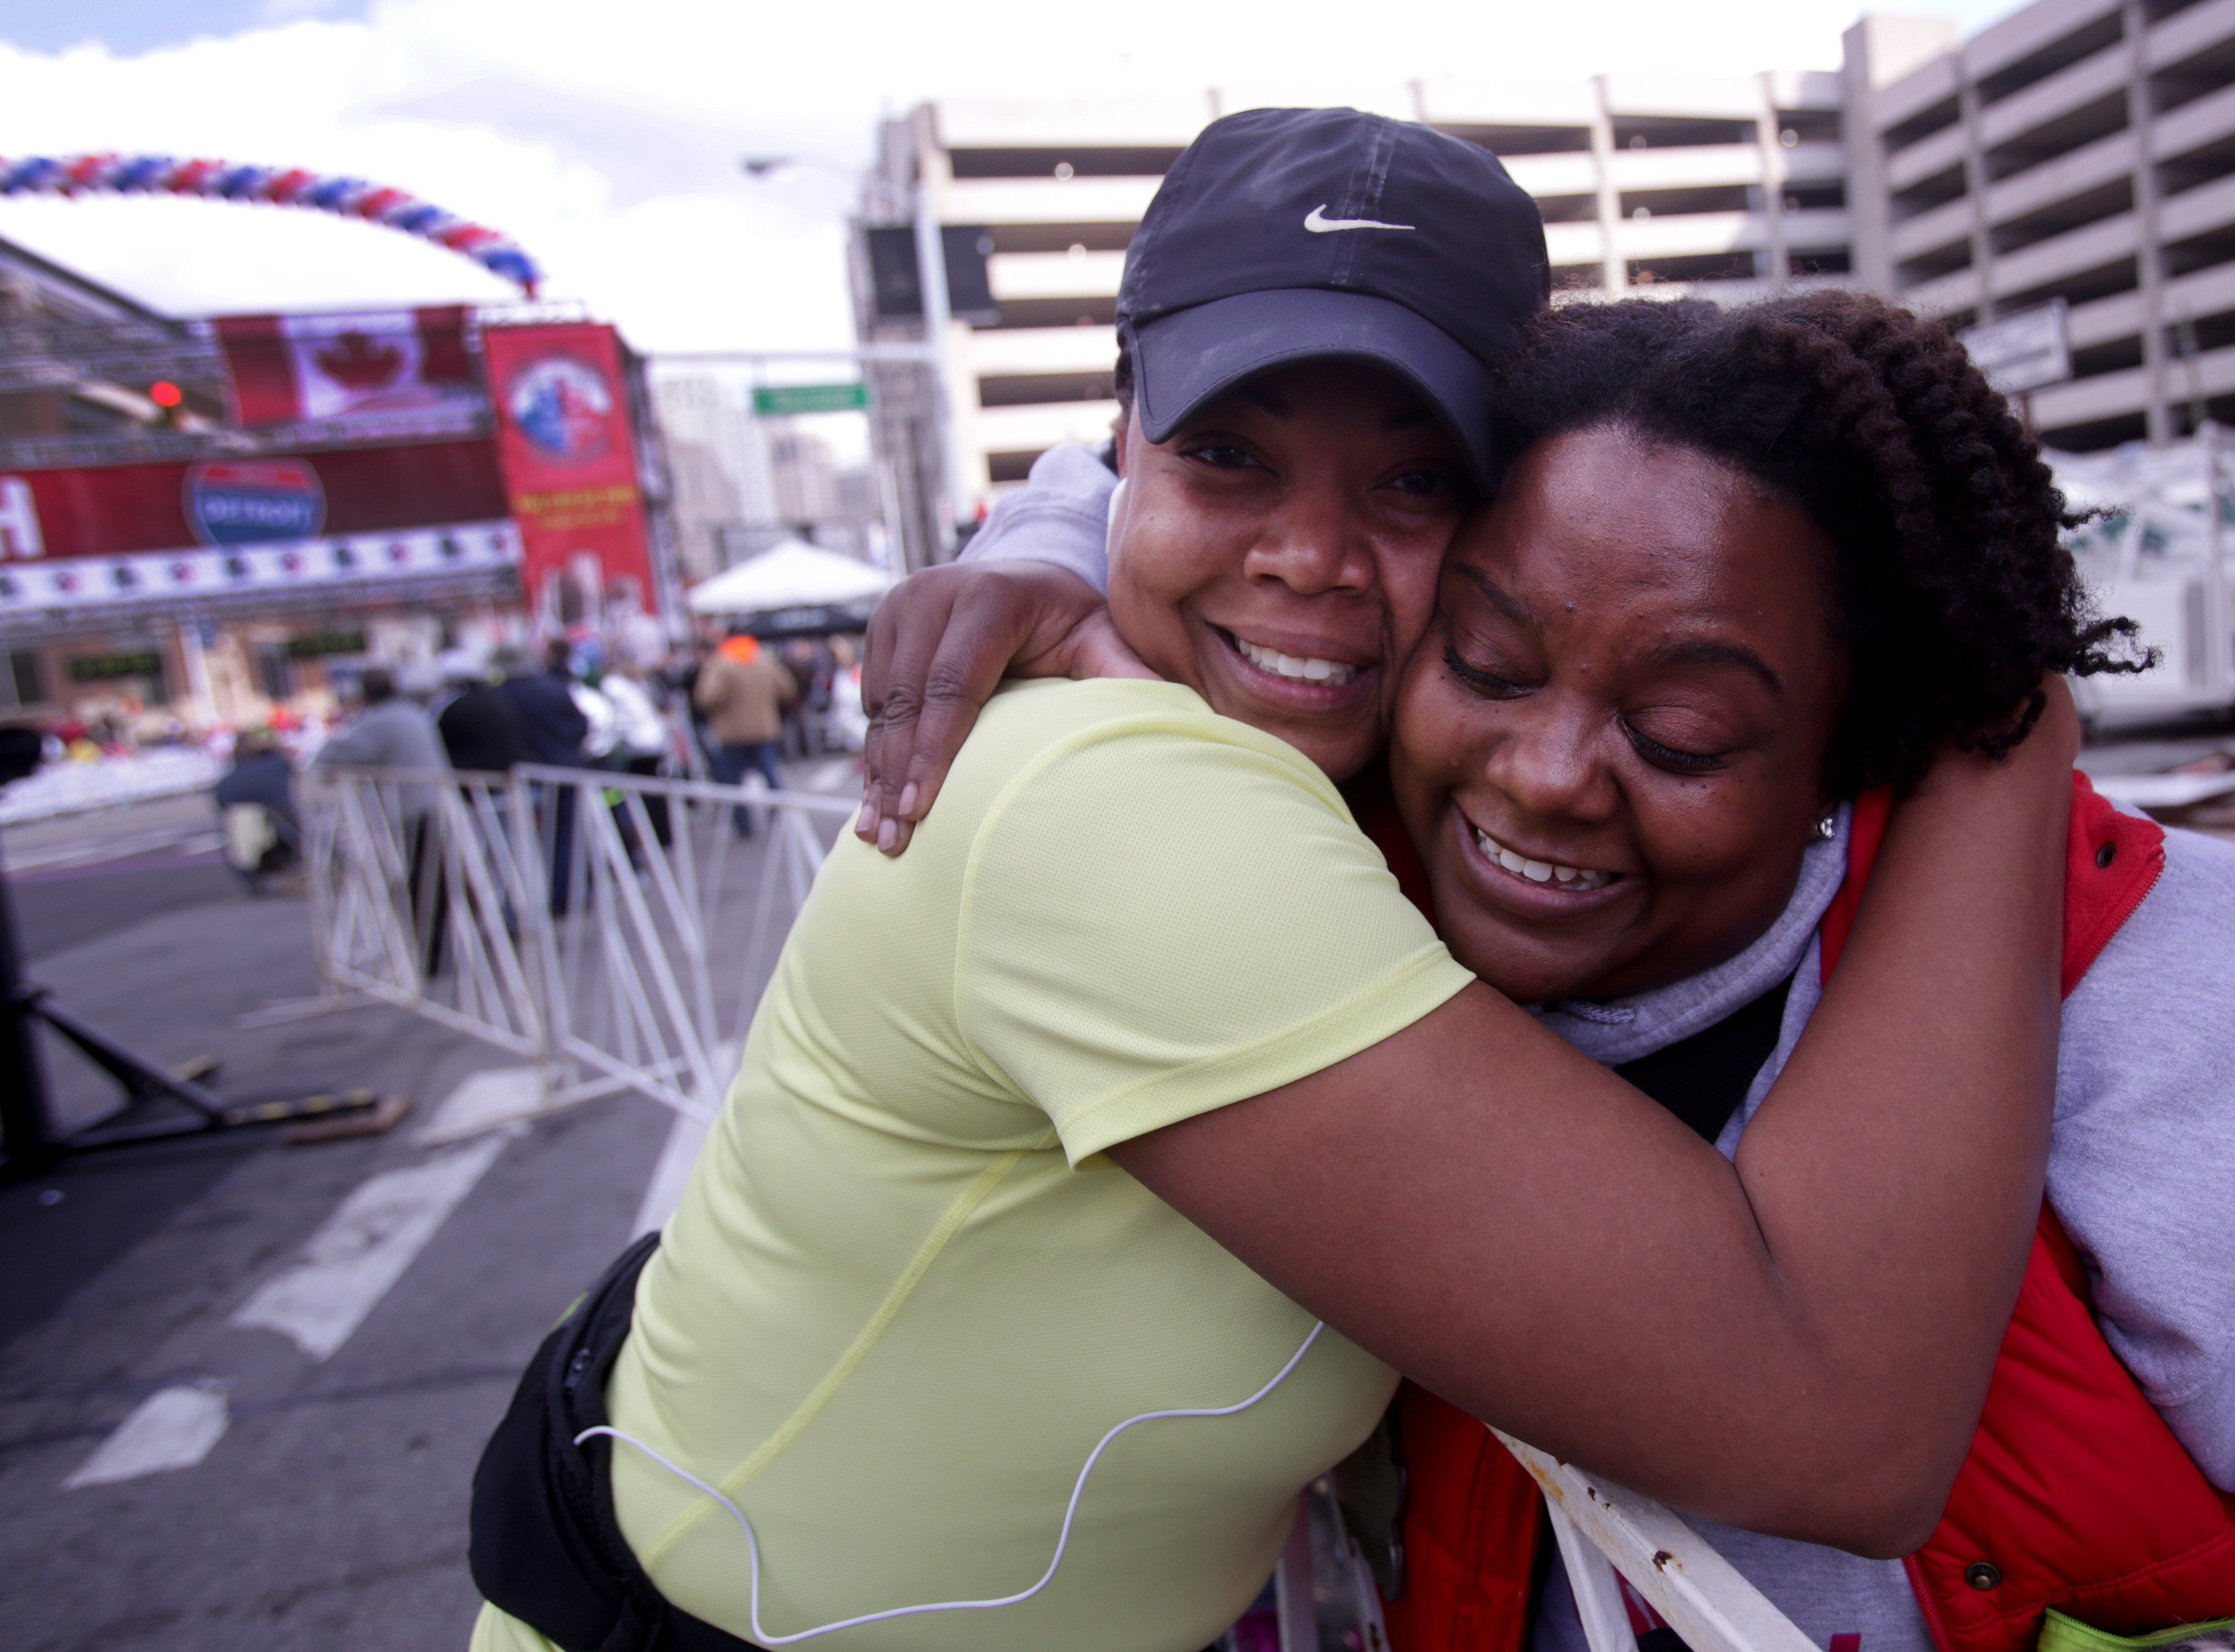 Kizzi Montgomery gets a hug from her friend after she crossed the finish line at the 36th Annual Detroit Free Press/Talmer Bank Marathon in Detroit Sunday, Oct. 20, 2013.